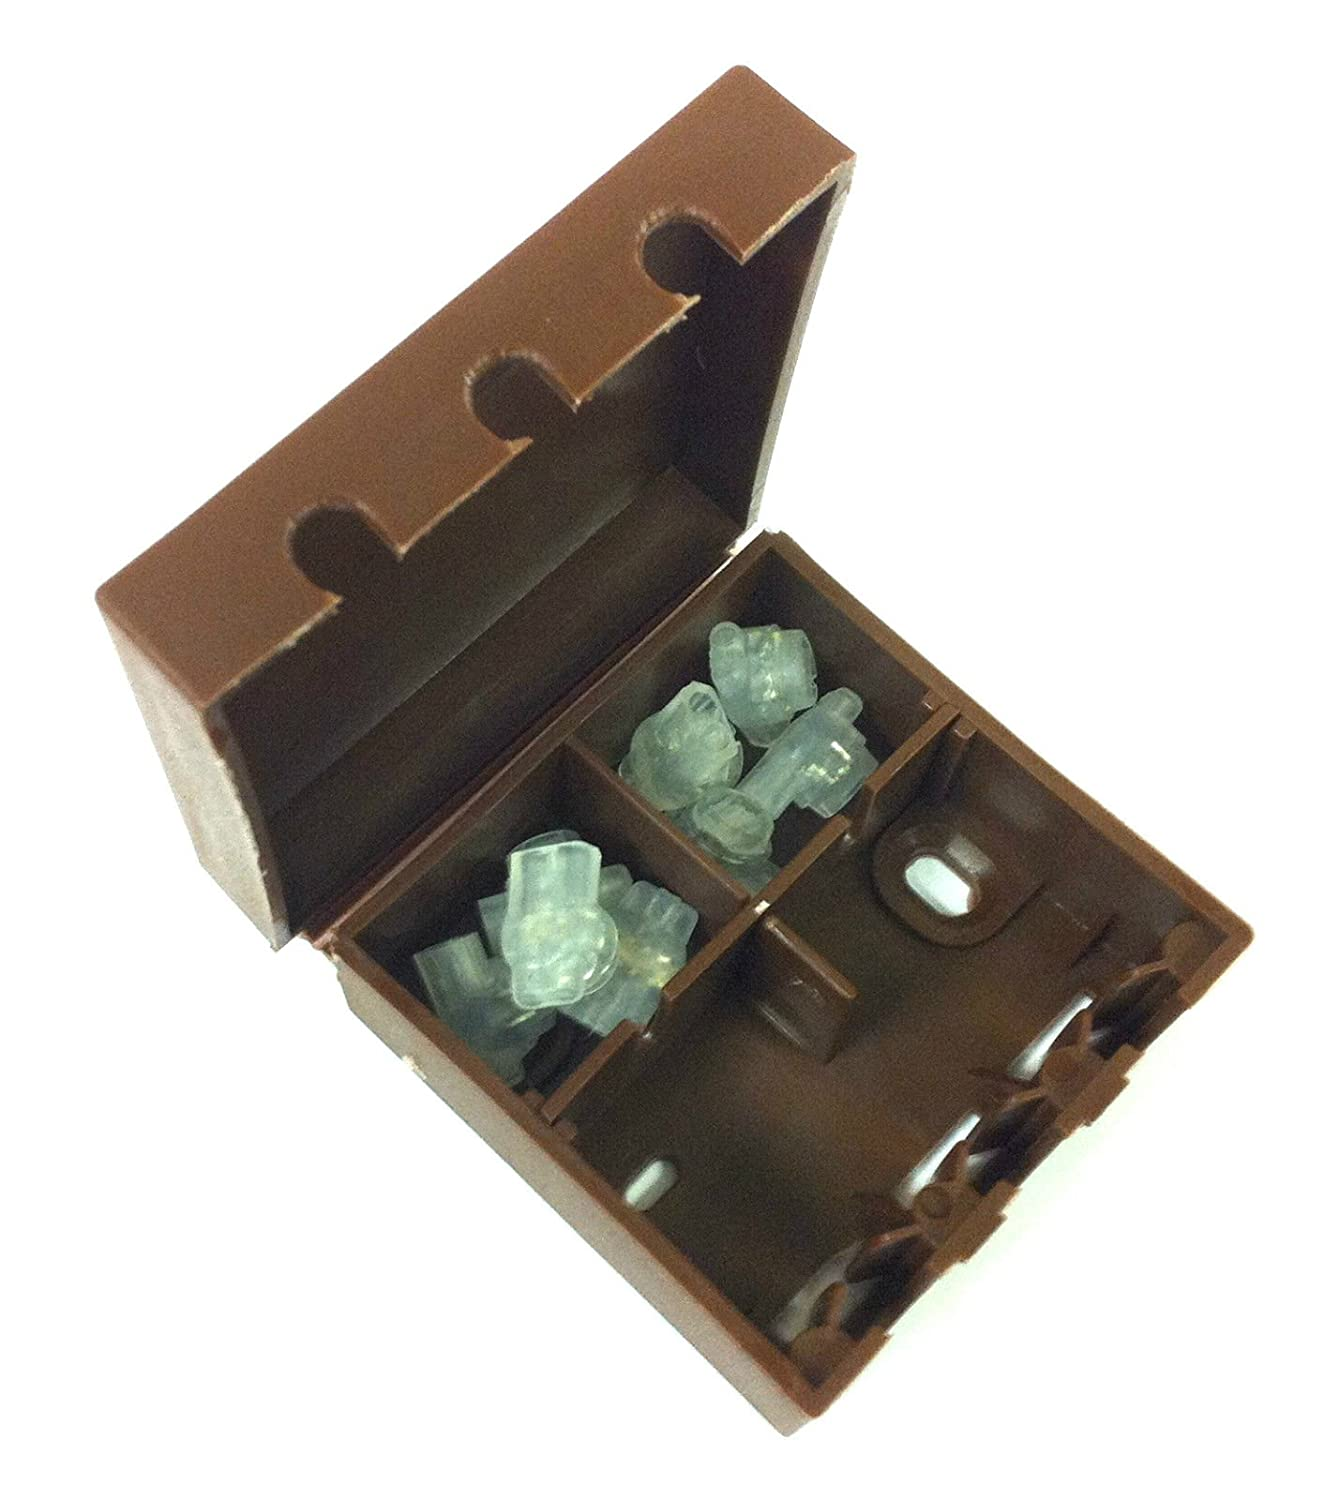 bt16a brown external telephone cable junction box includes free 8 x